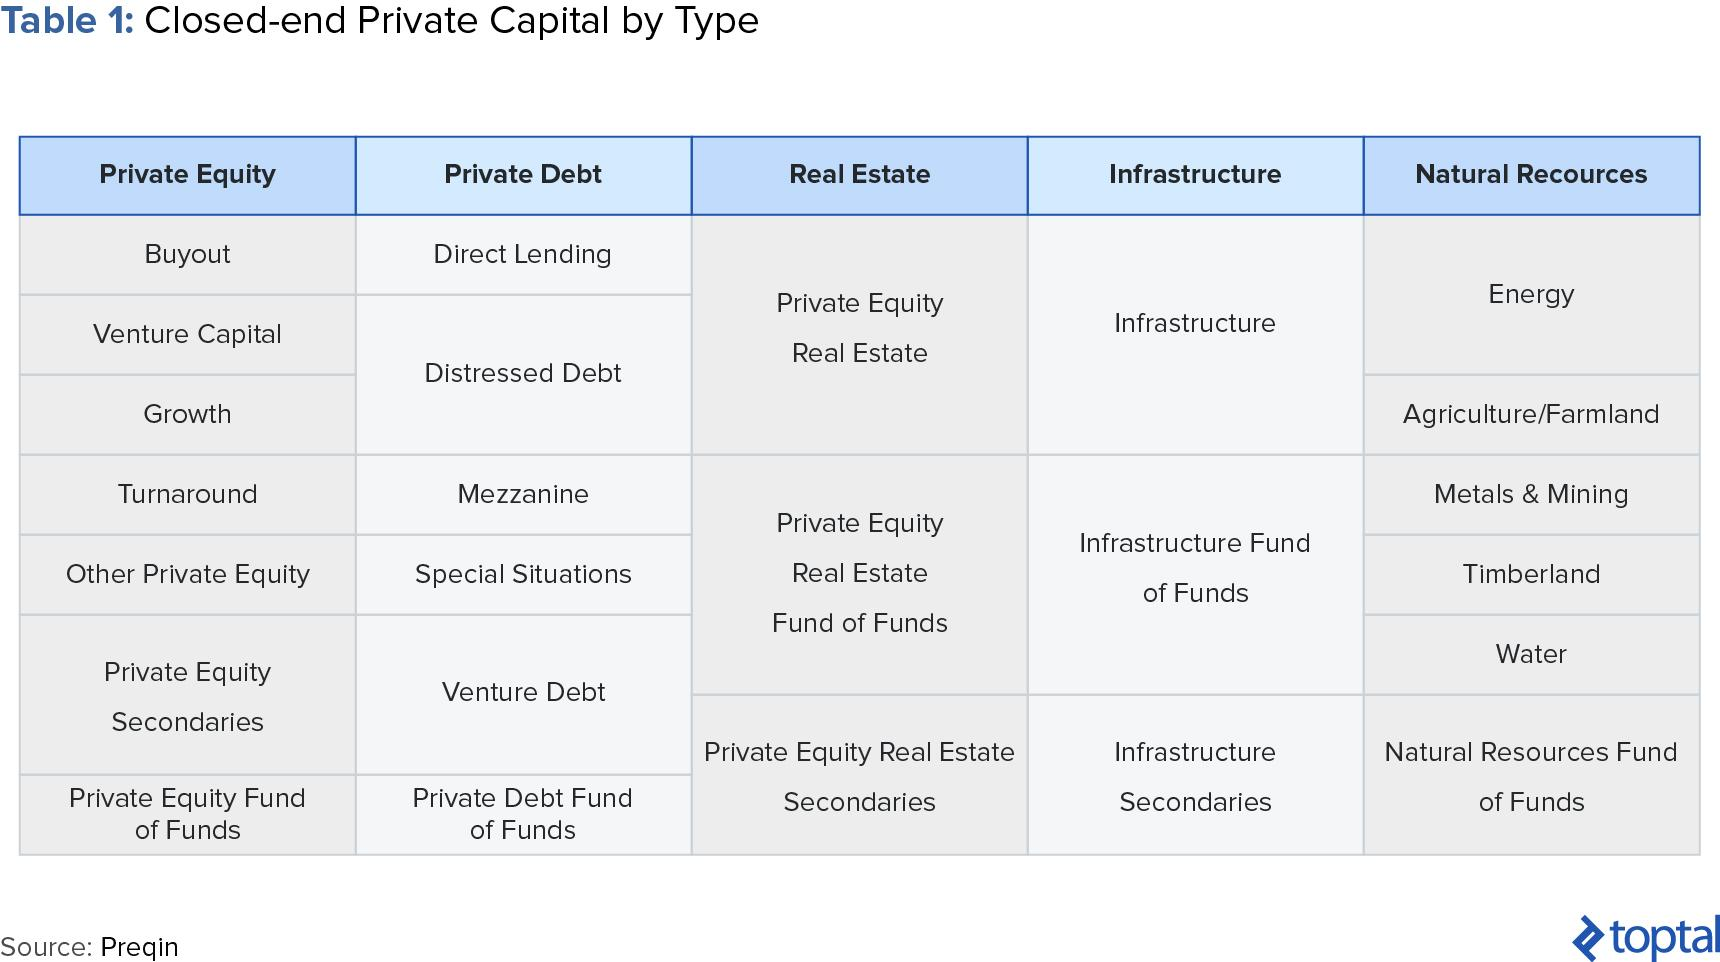 Table 1: Closed-end Private Capital by Type